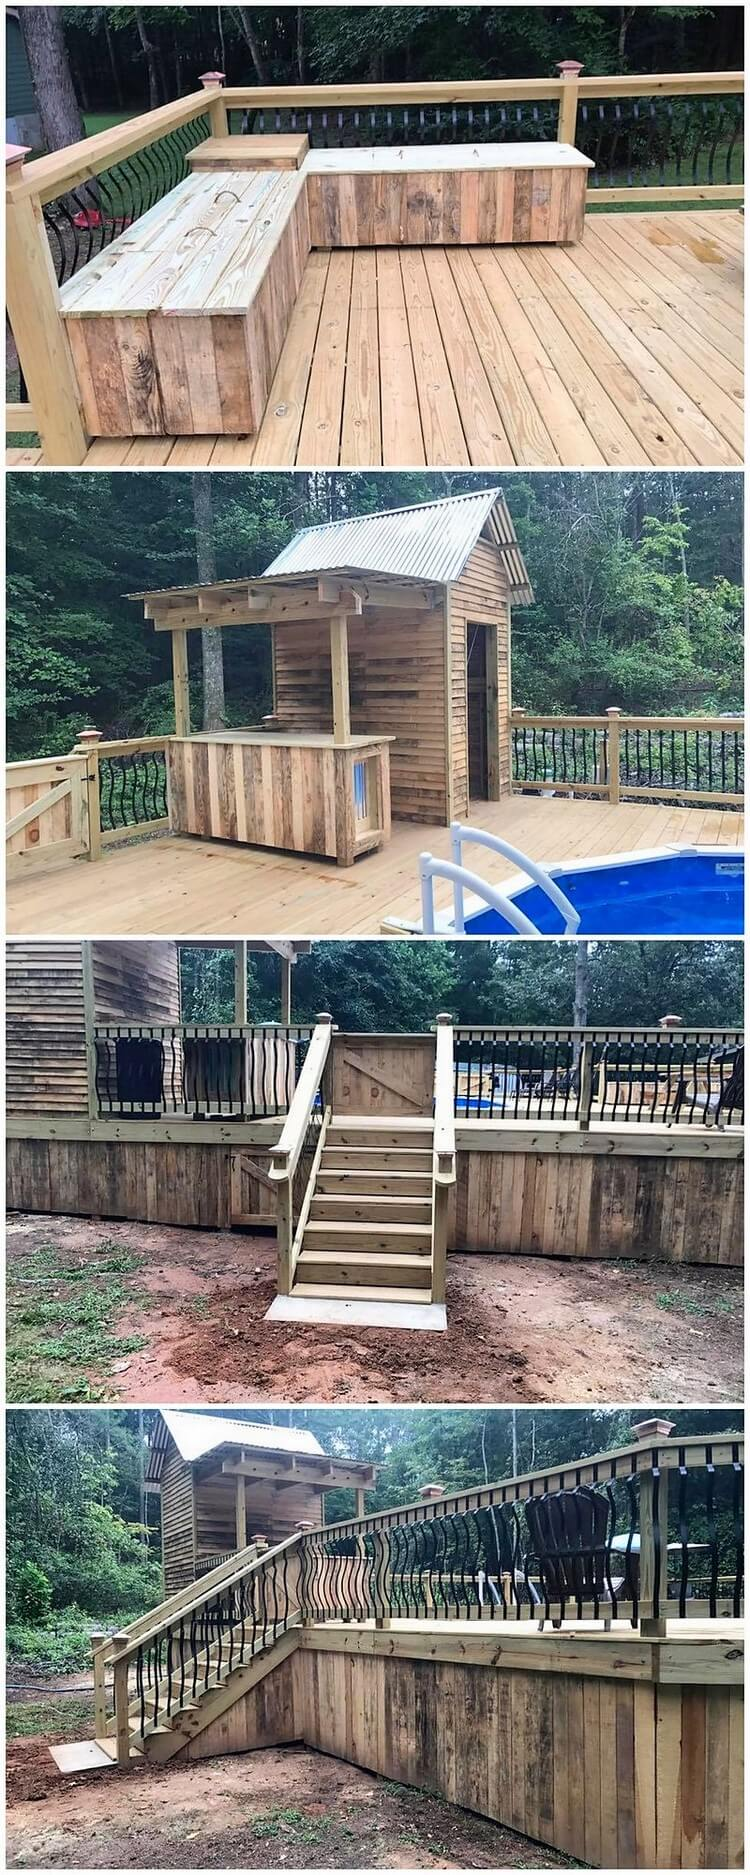 Pallet Swimming Pool Terrace with Furniture and Cabin